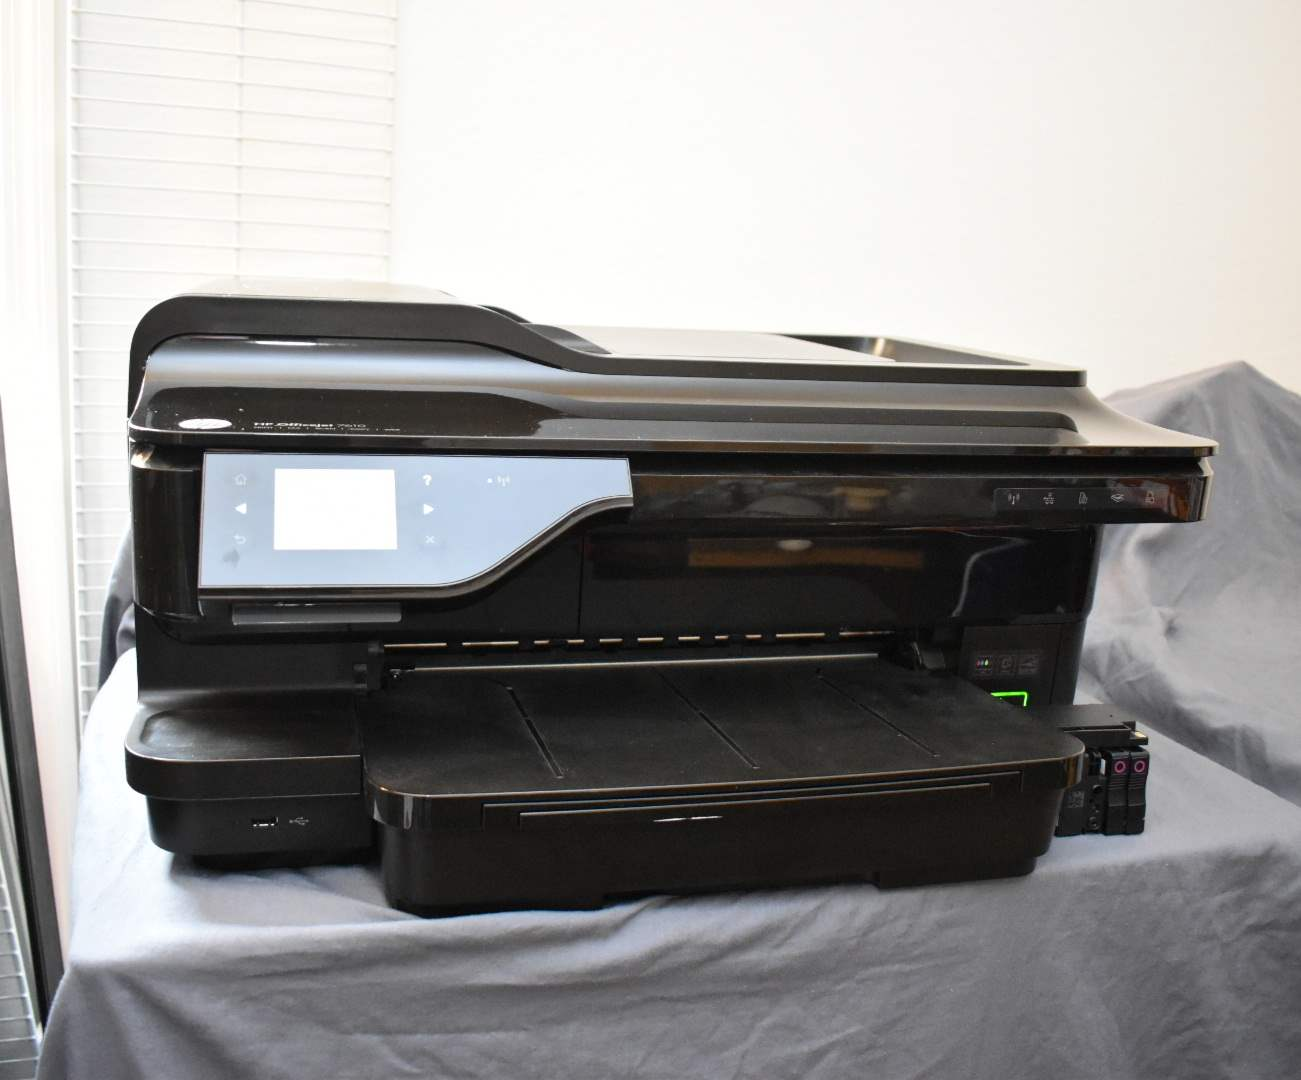 HP OfficeJet 7610 All-In-One Print, Fax, Scan, Copy with Wireless Connection